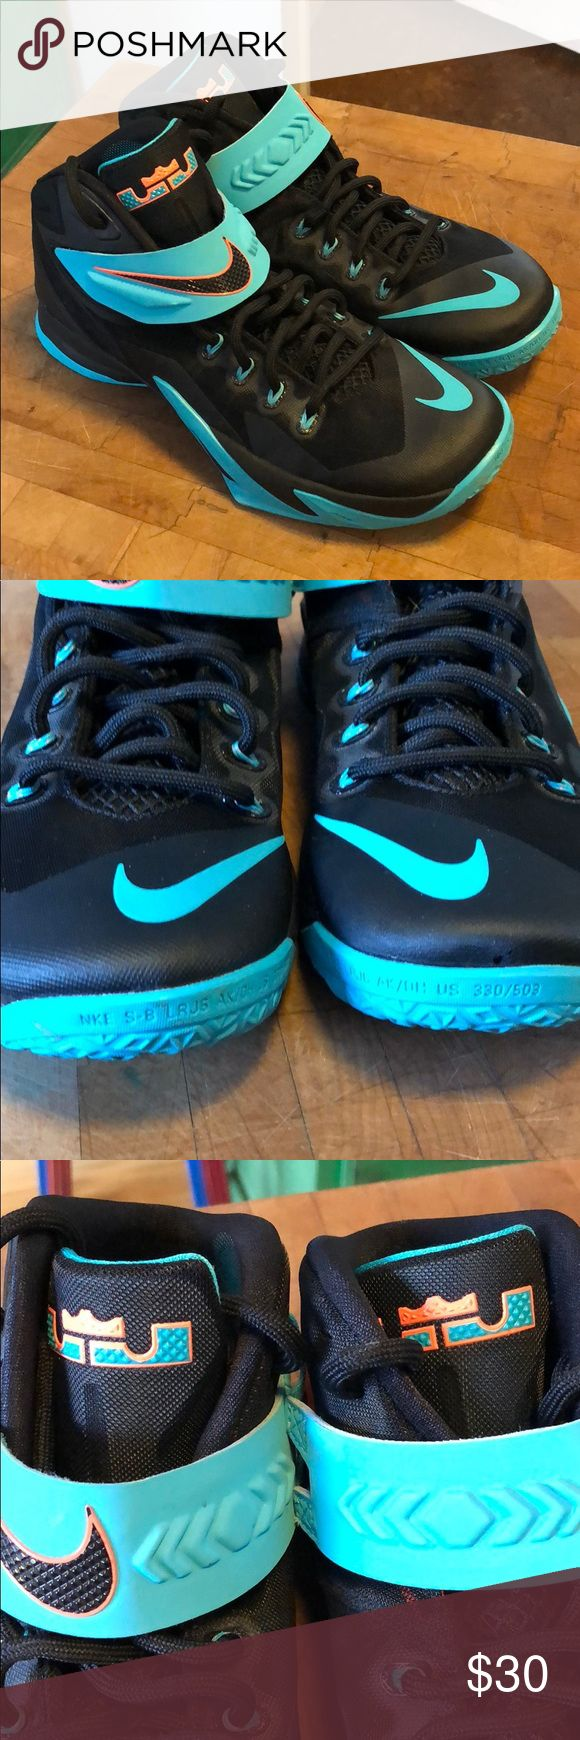 Nike Lebron soldiers so 9.5 men excellent Nike shoes in excellent condition, black and turquoise with orange zipper, men size 9.5 Nike Shoes Athletic Shoes